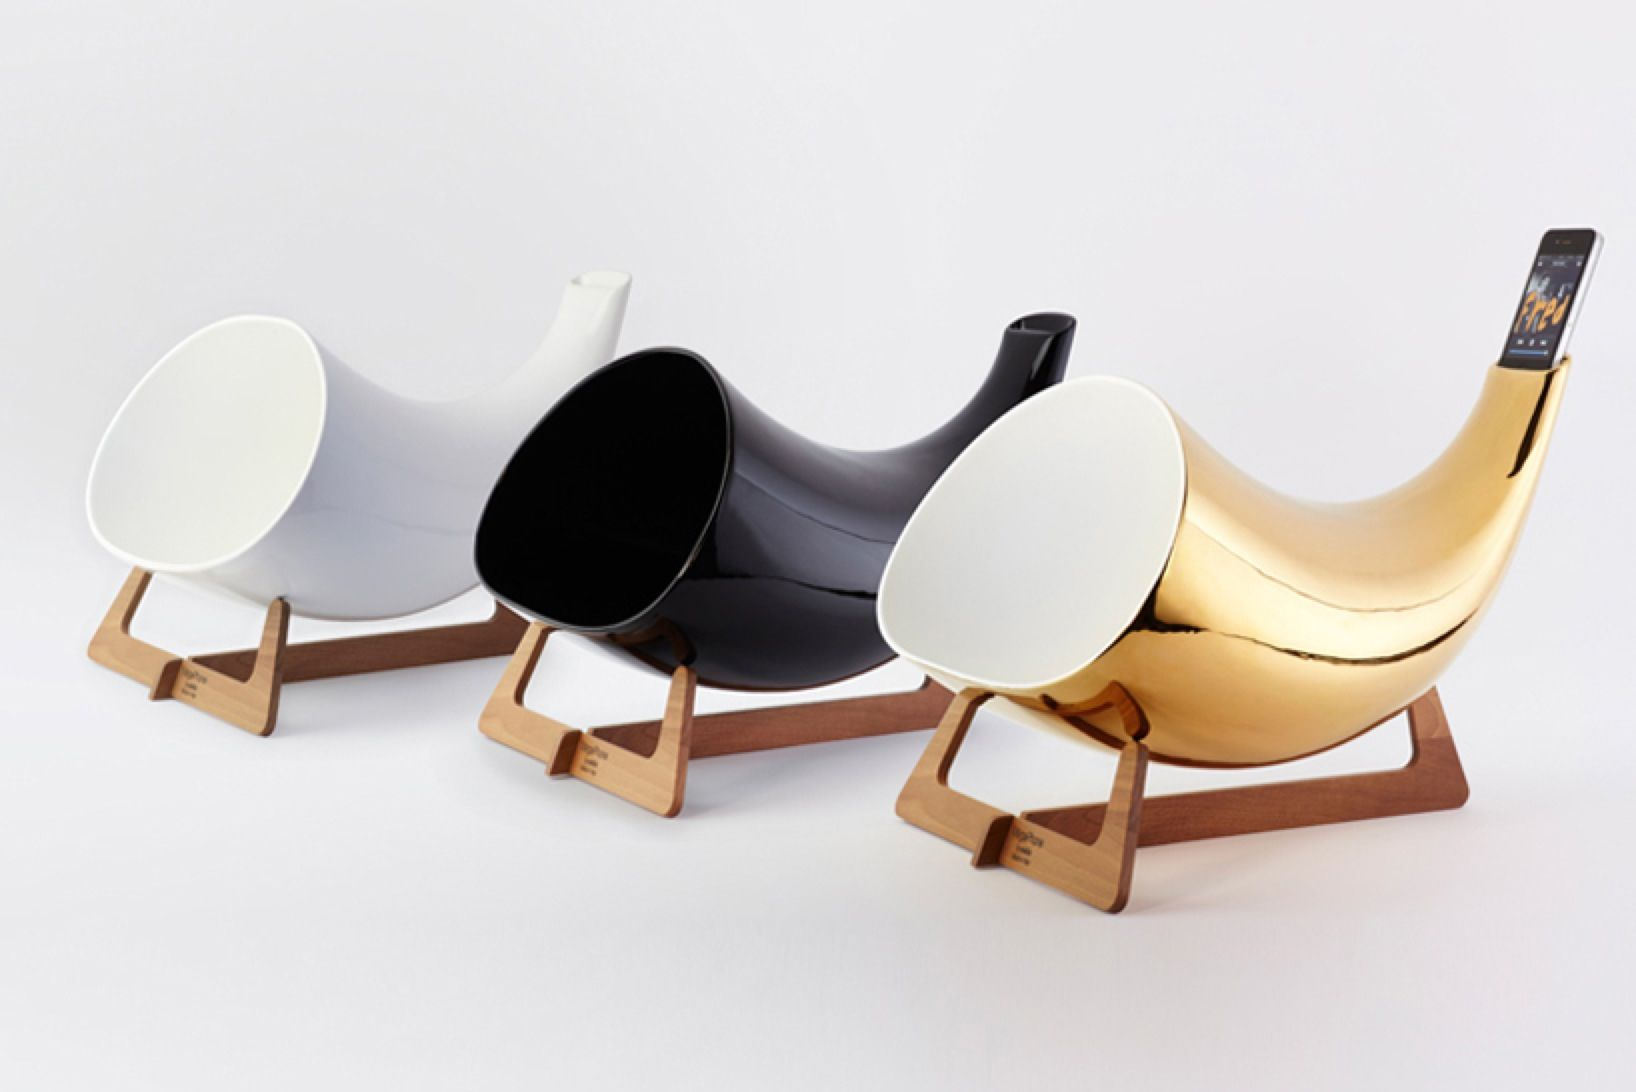 İphone acoustic horn